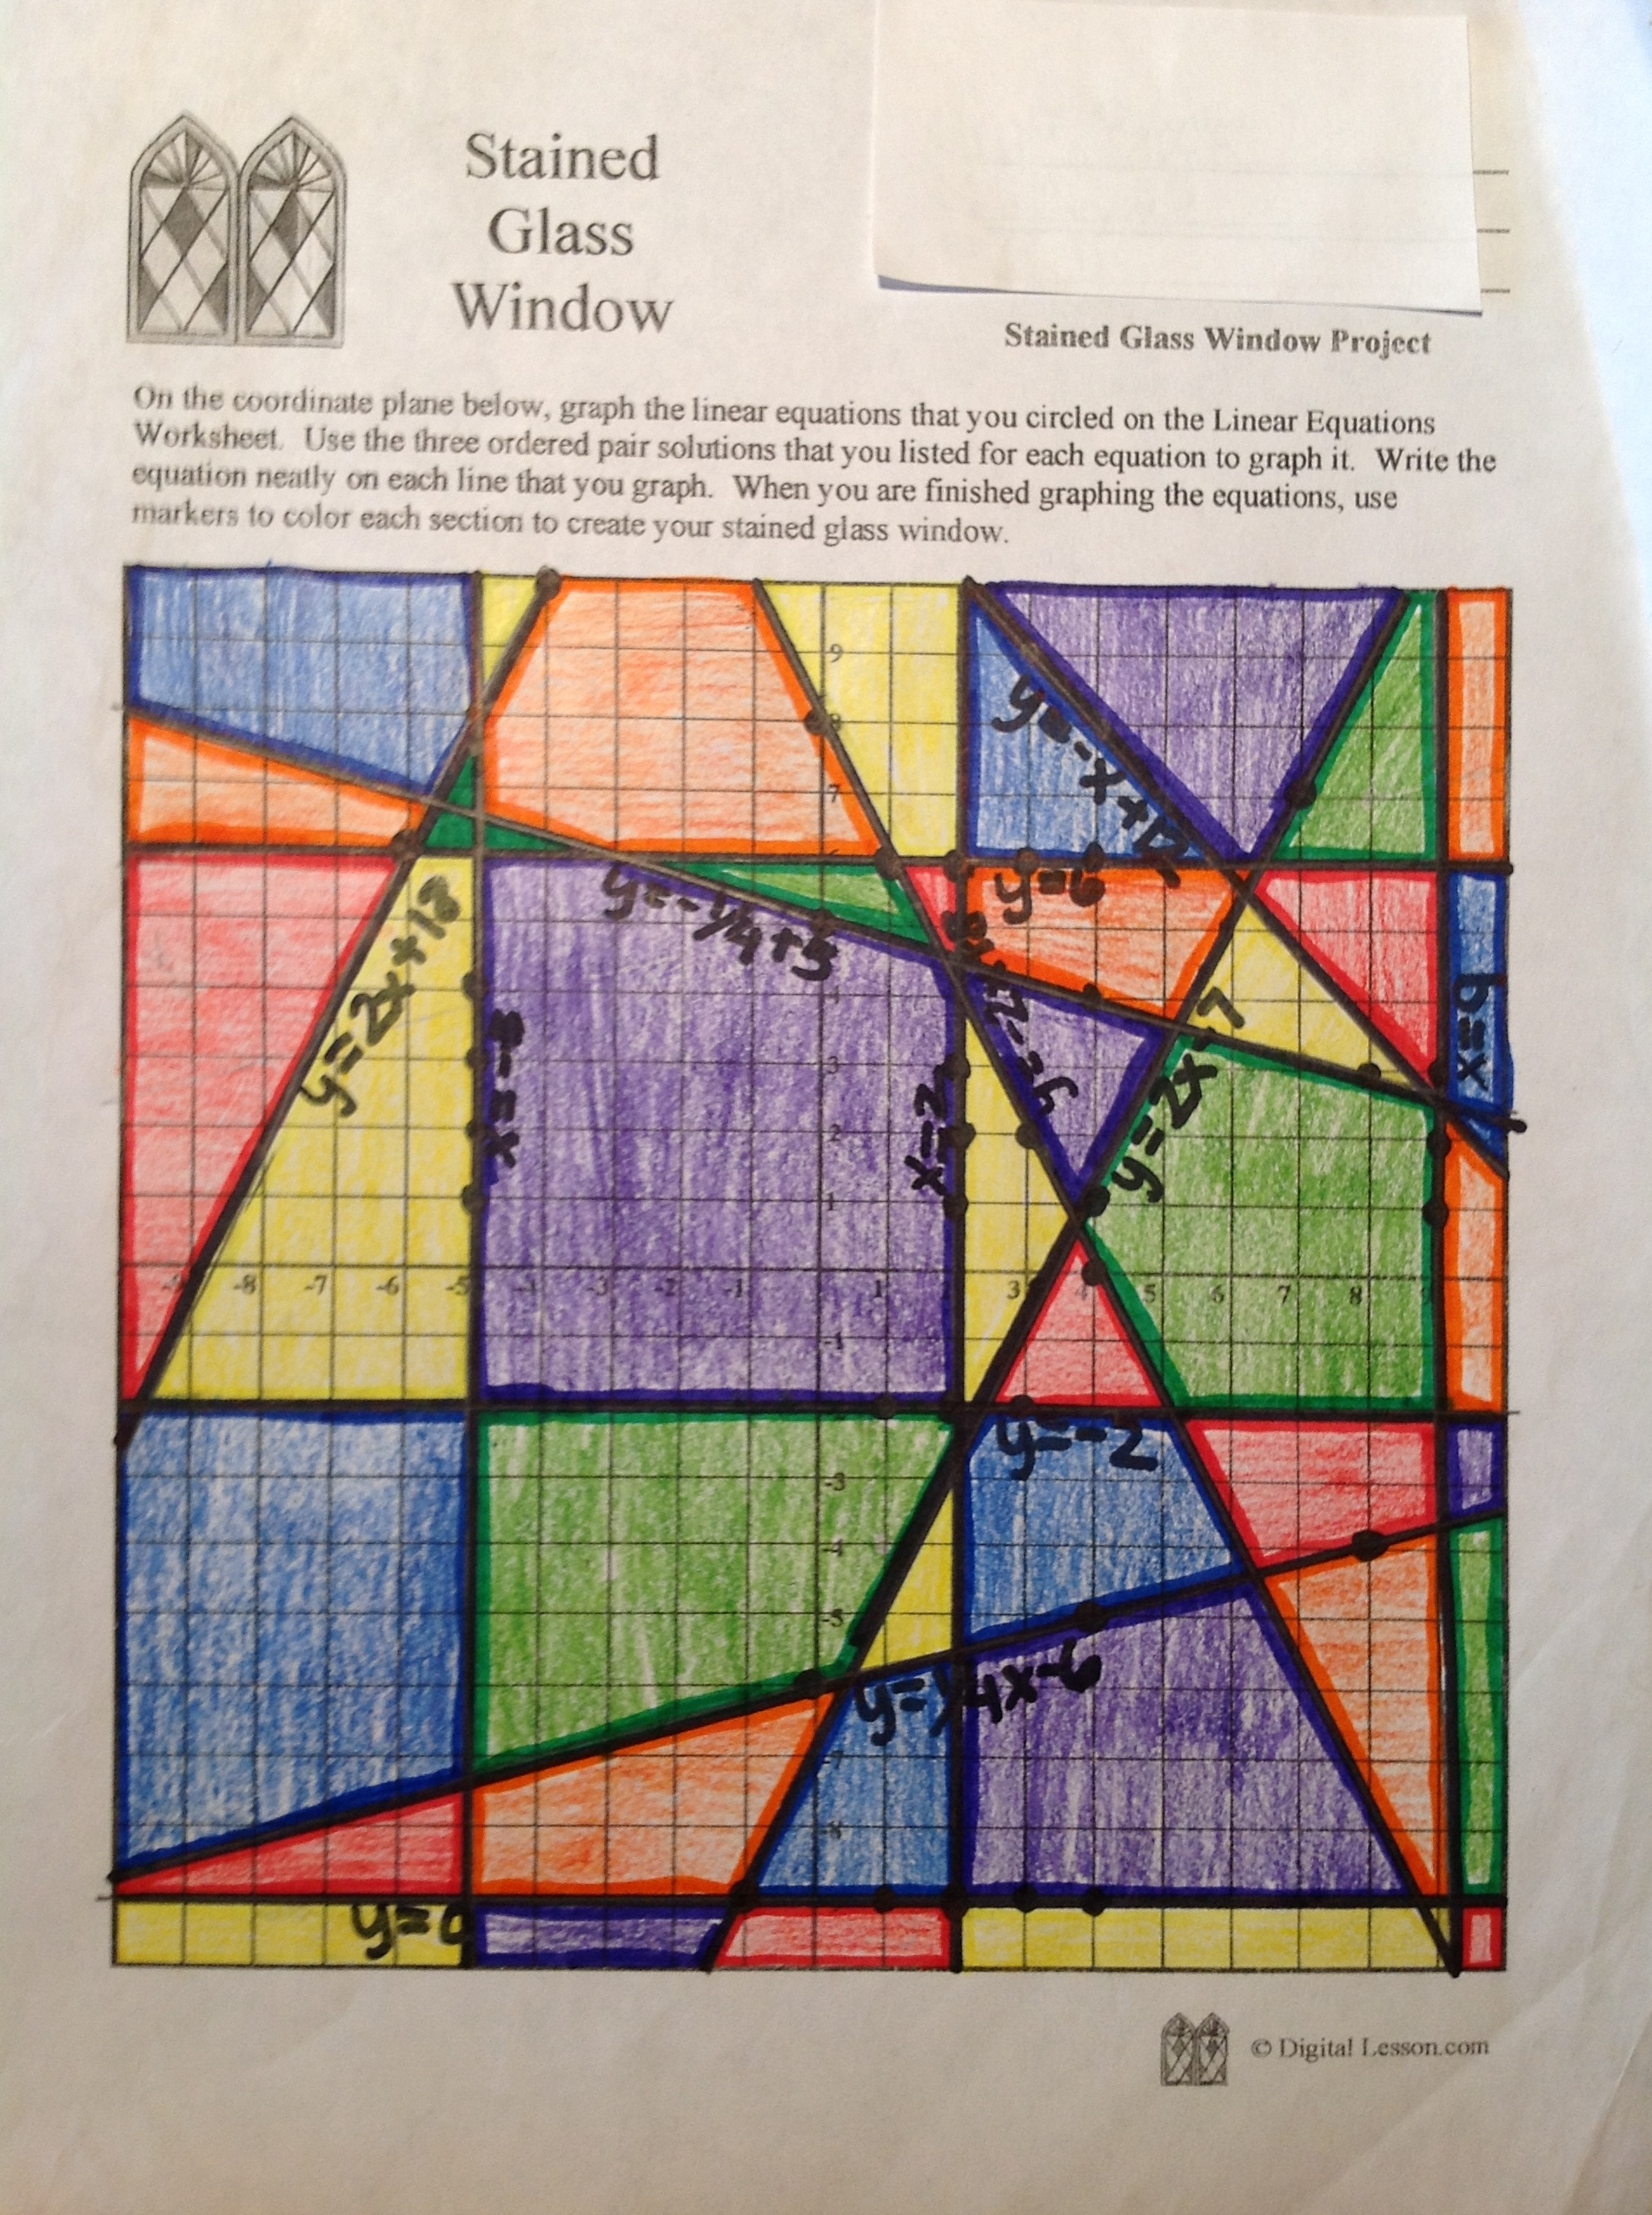 Sample Stained Glass Window Project – Click for Larger Image